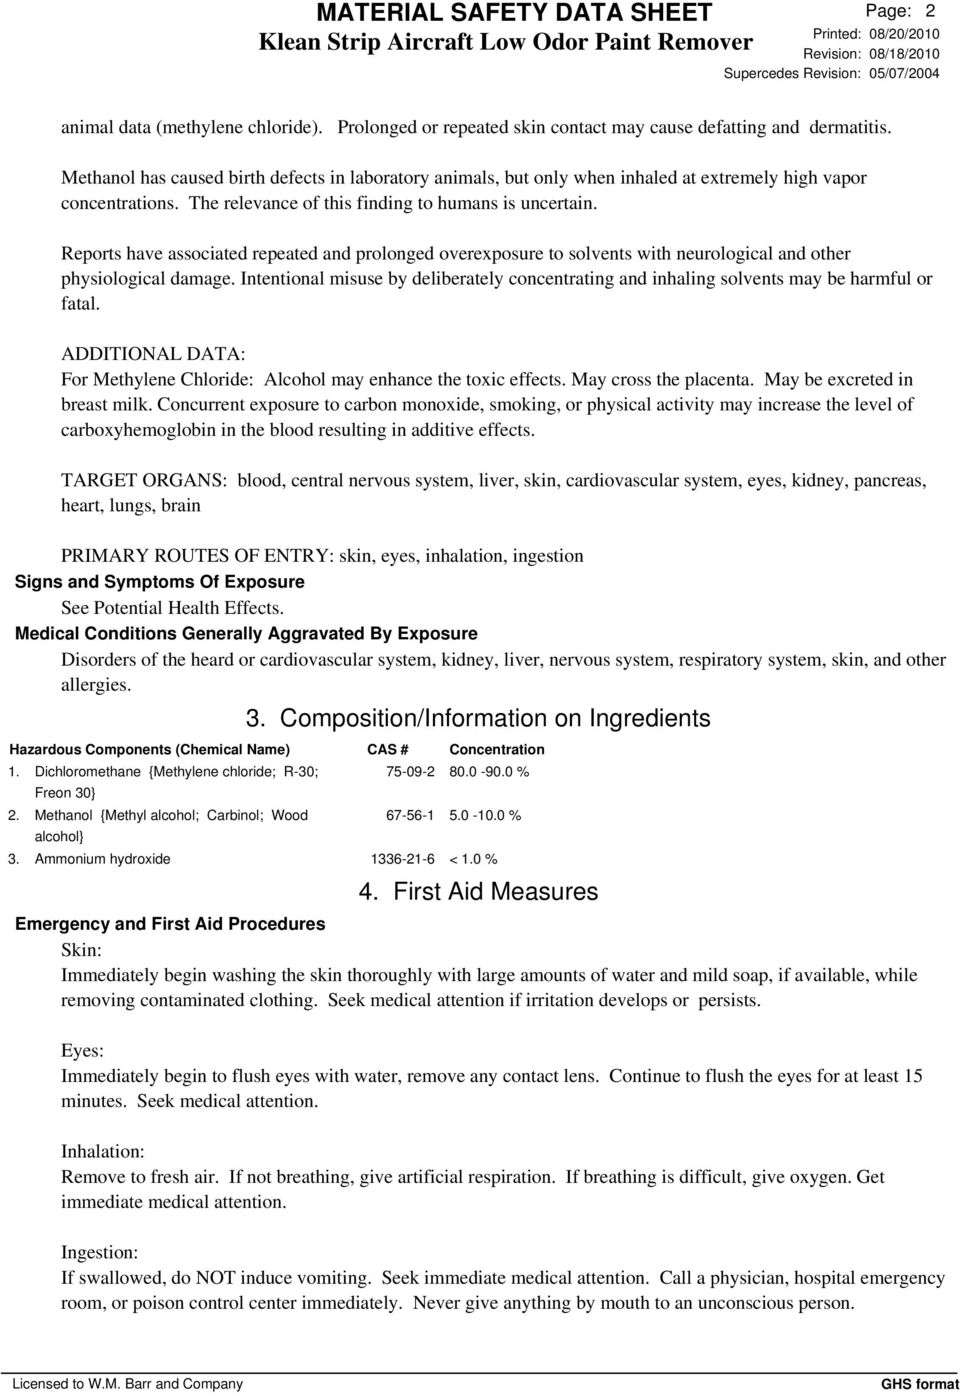 Material Safety Data Sheet Klean Strip Aircraft Low Odor Paint